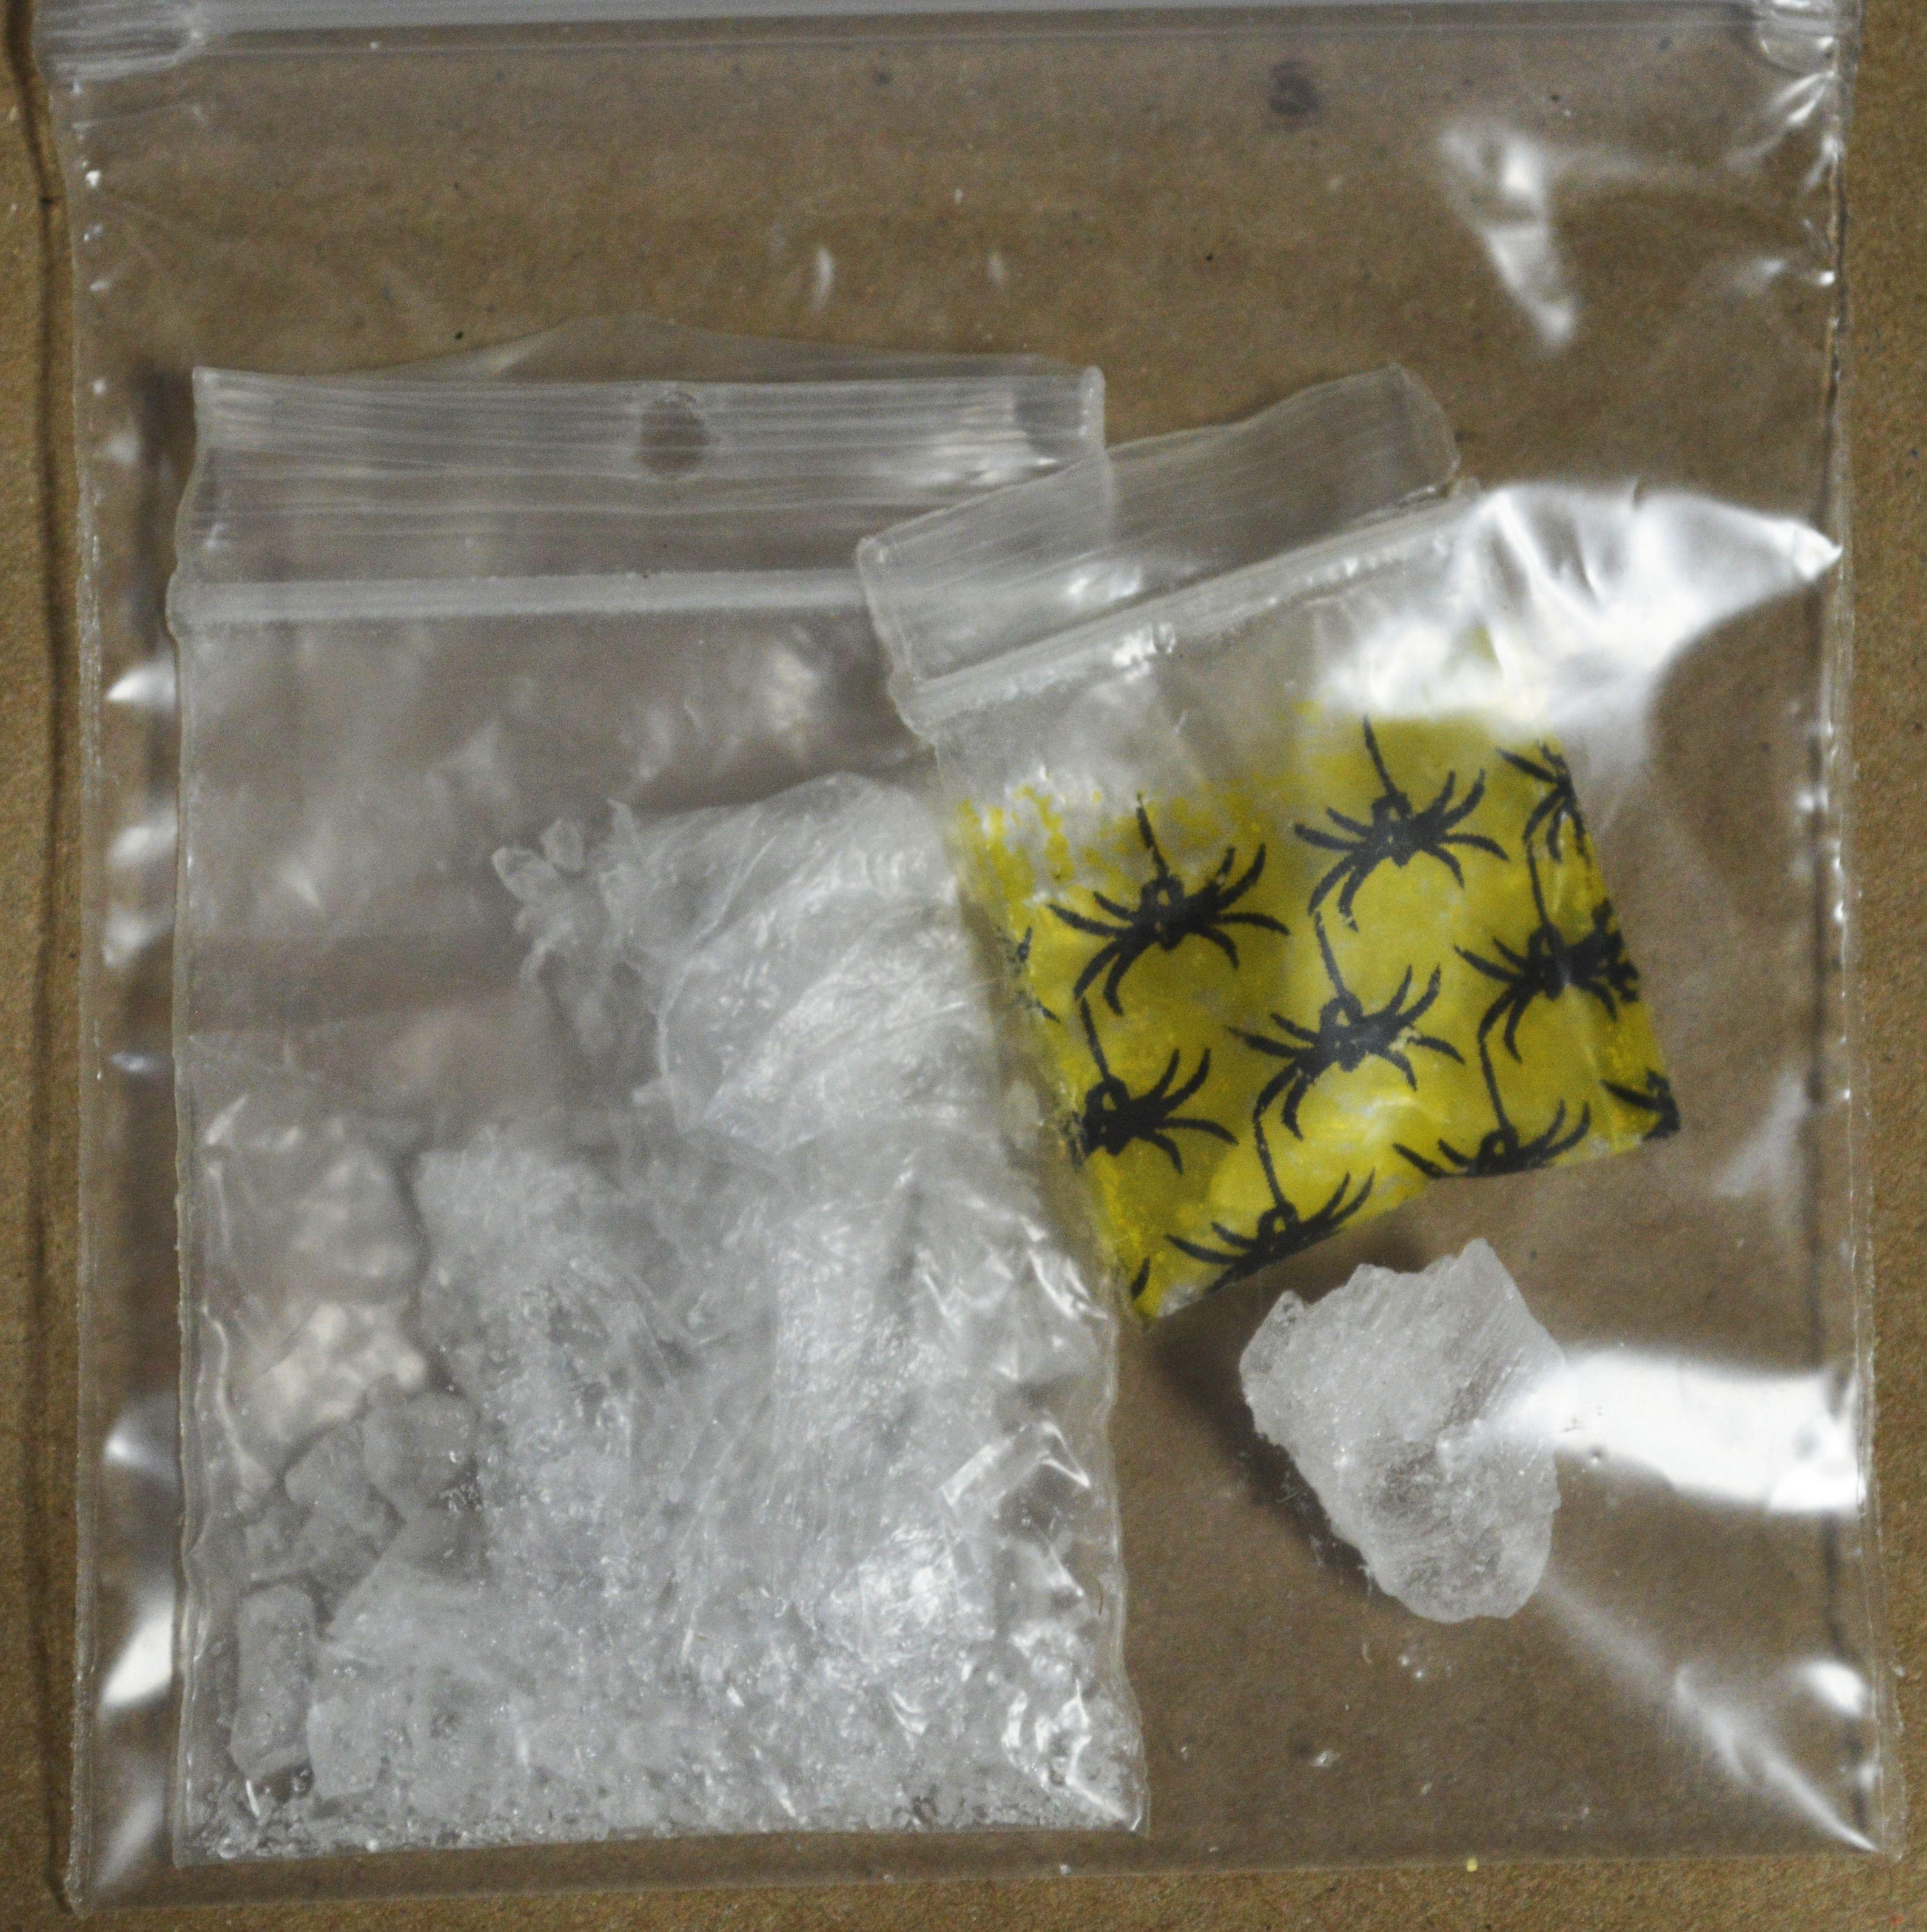 Meth arrests on the rise in Alamance County - News - The